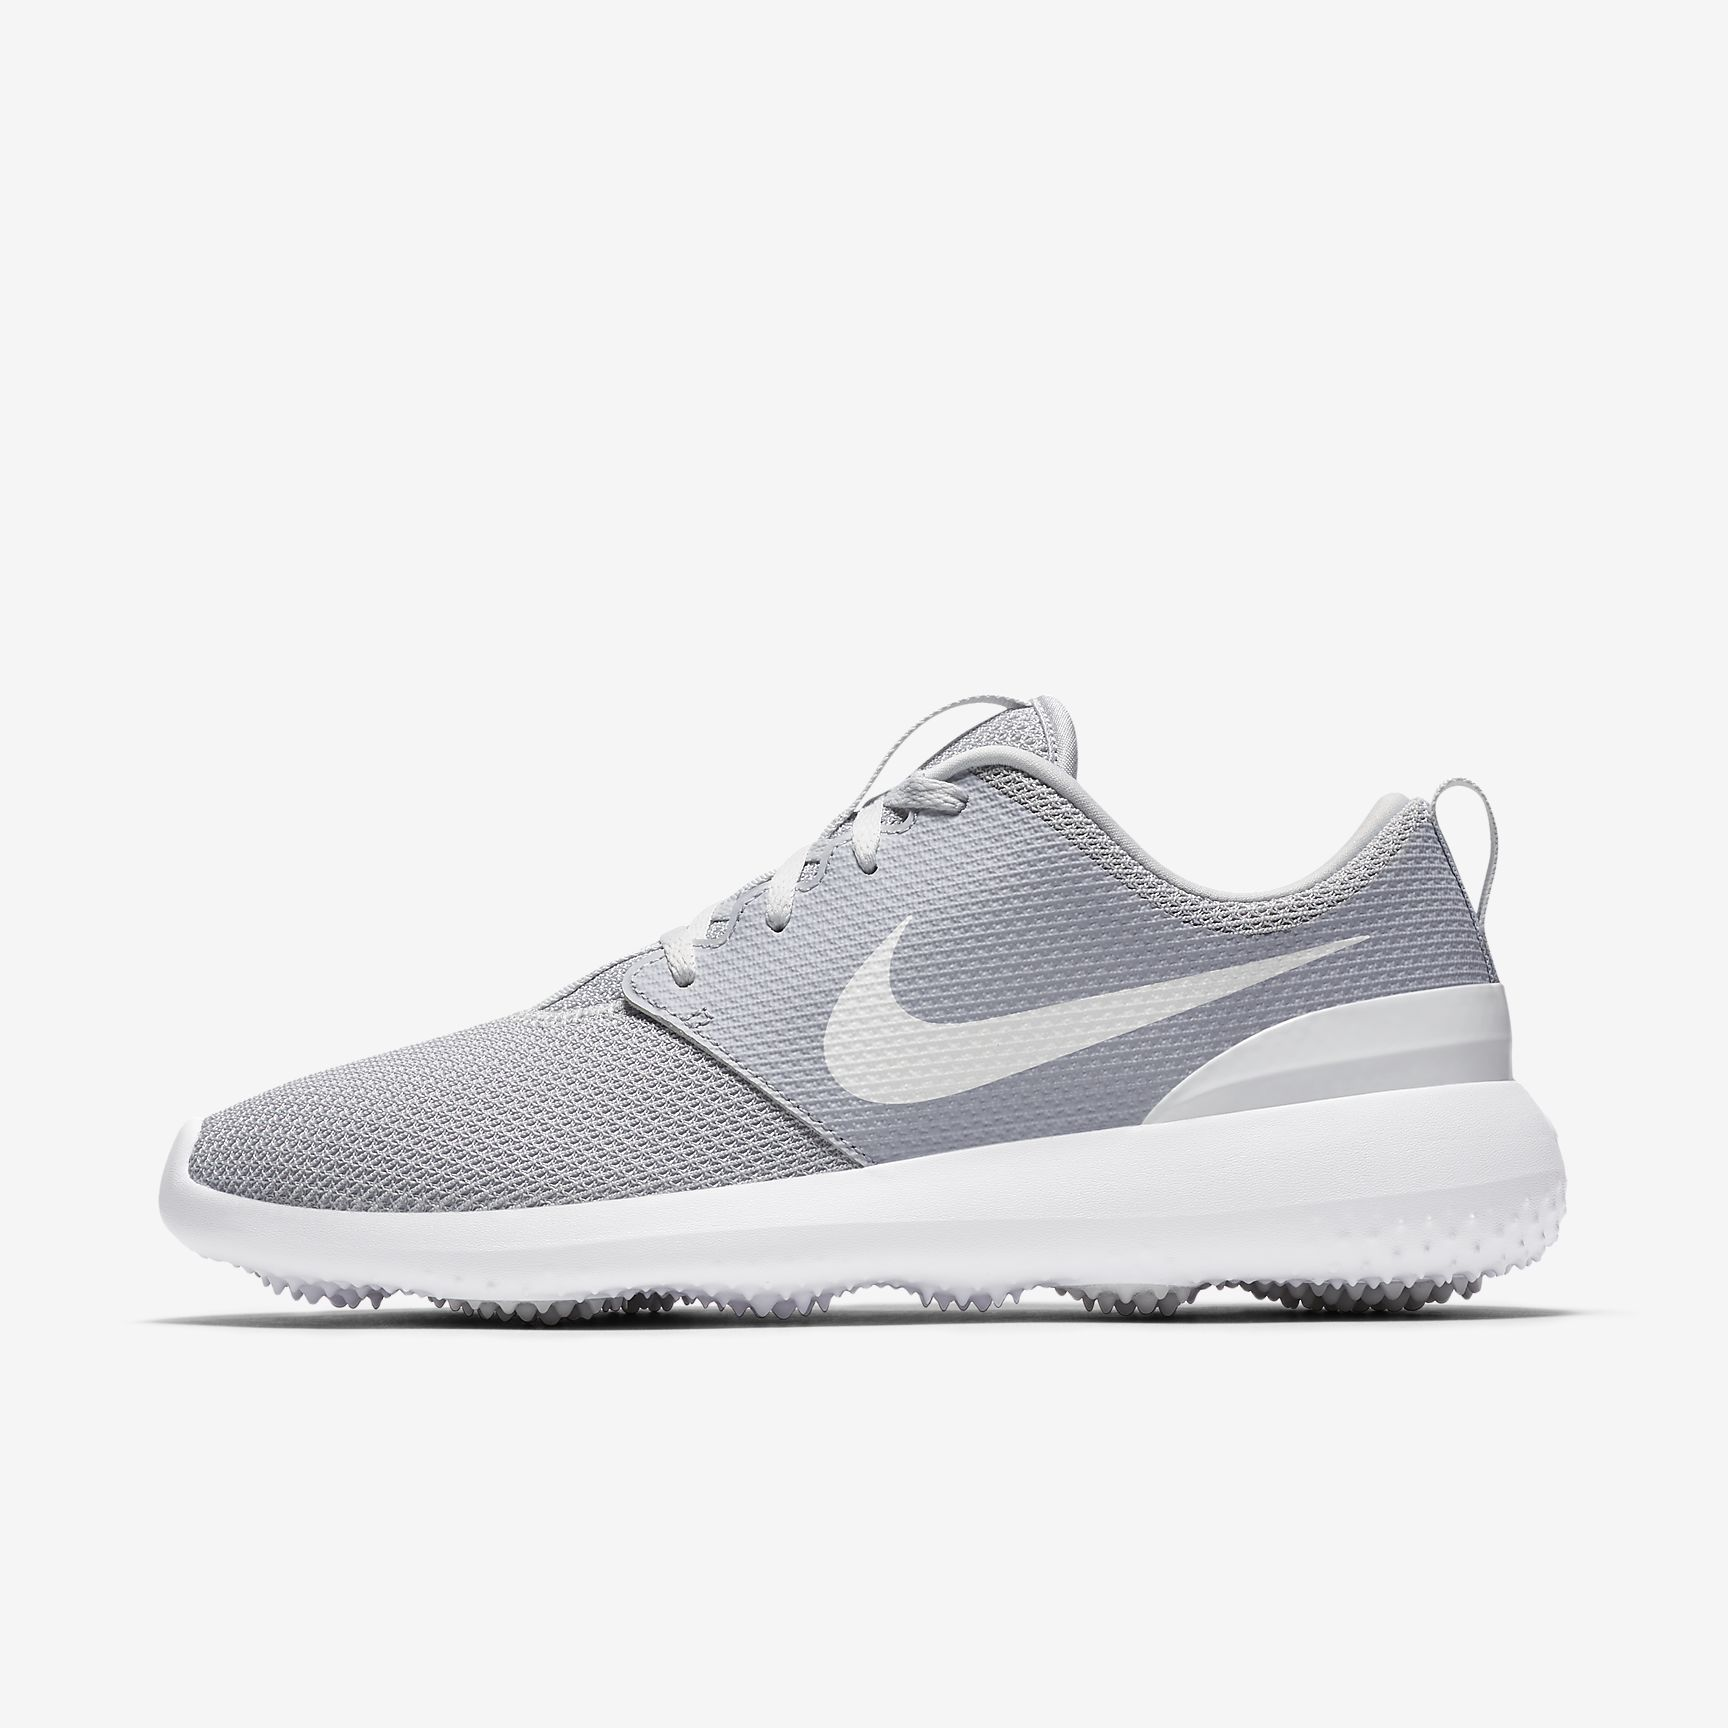 894ecaec1bffe Nike Roshe G Review  The Best Golf Shoe for Under  100